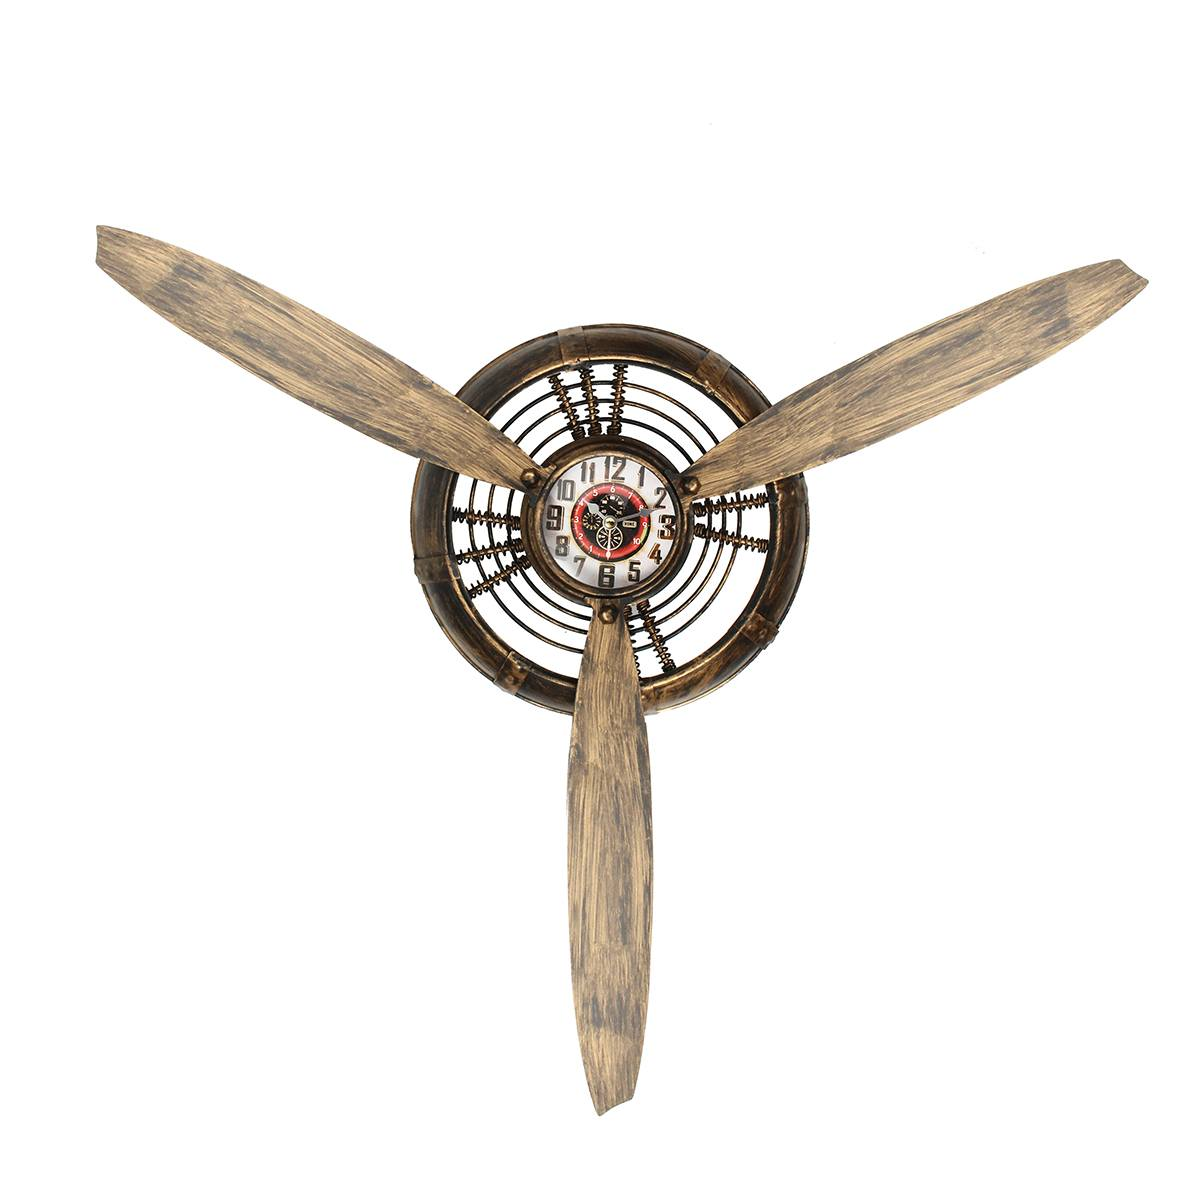 Wall Clock Vintage Decorative Metal Bar Home Living Room Decor Air Plane Propeller Europe Industrial Wall Hanging Ornament Art